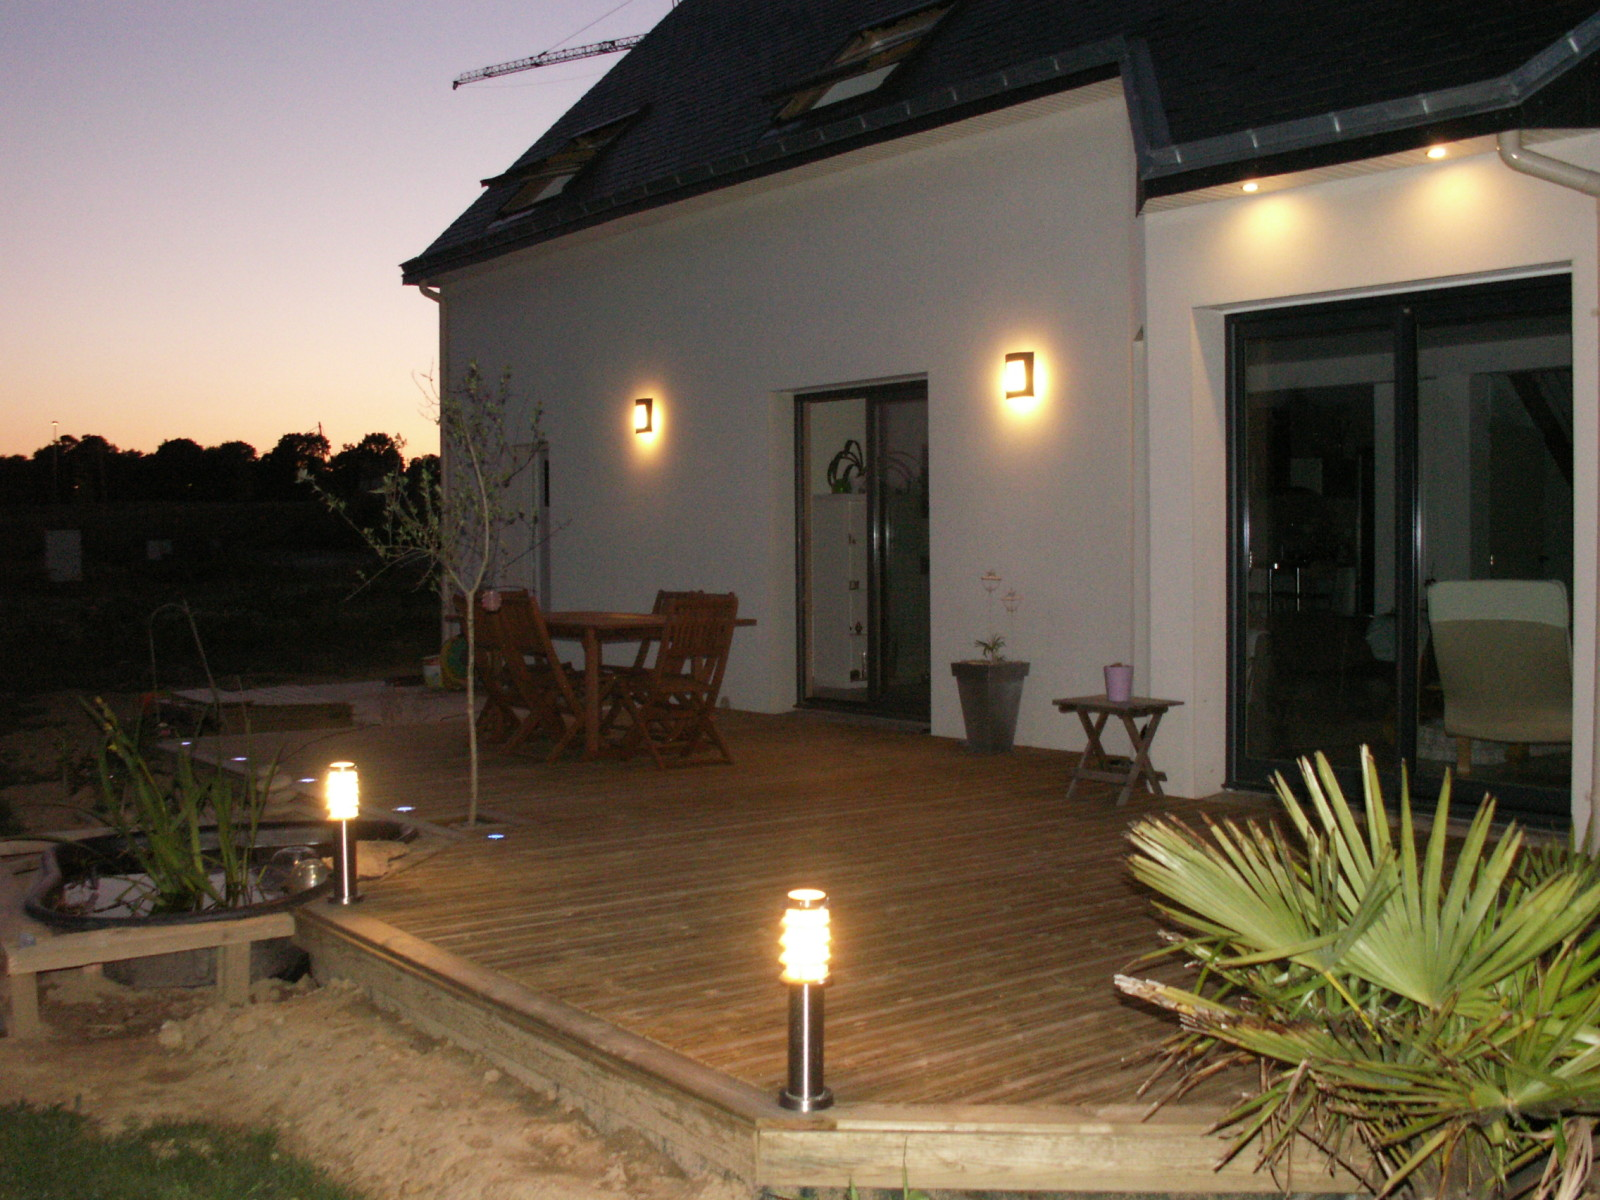 Clairage terrasse eclairage ext rieur for Eclairage terrasse led